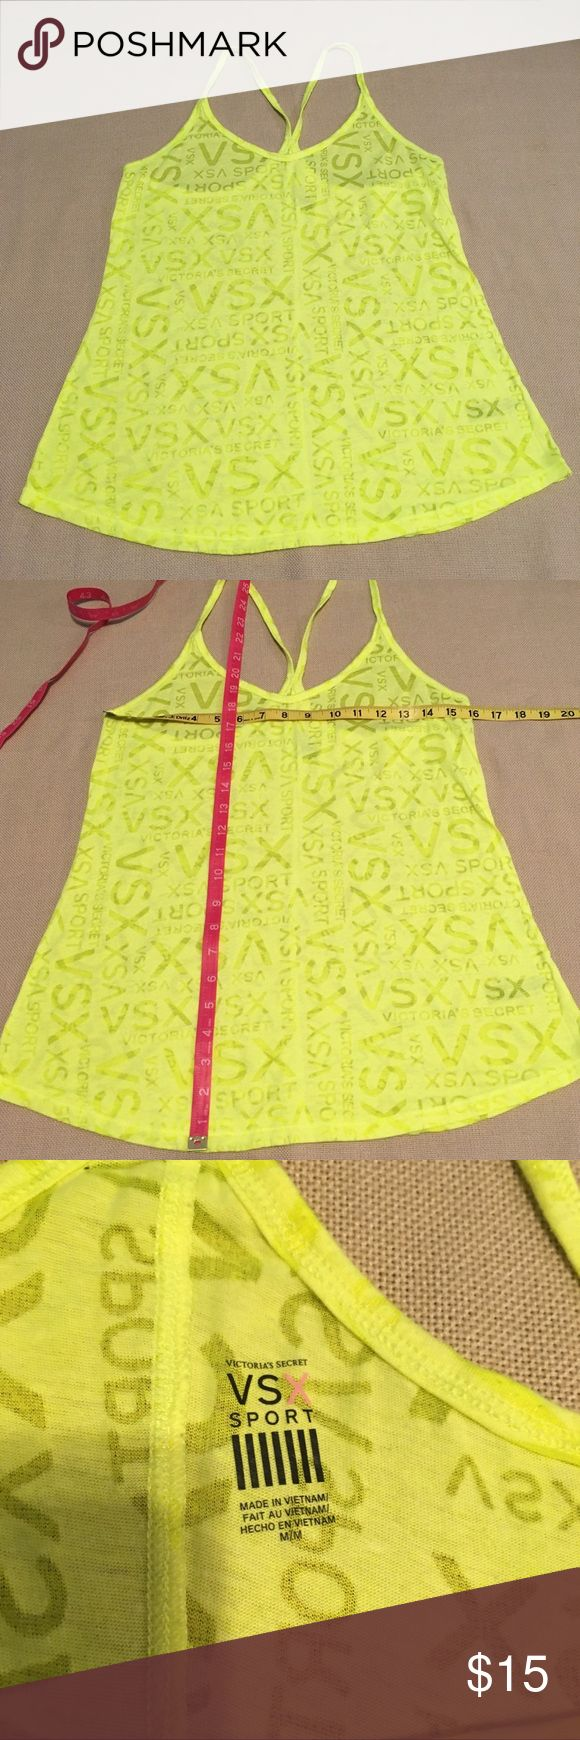 Victoria's Secret VSX neon yellow sheer top Victoria's Secret VSX neon yellow sheer workout top Excellent used condition Smoke free Feel free to make an offer Victoria's Secret Tops